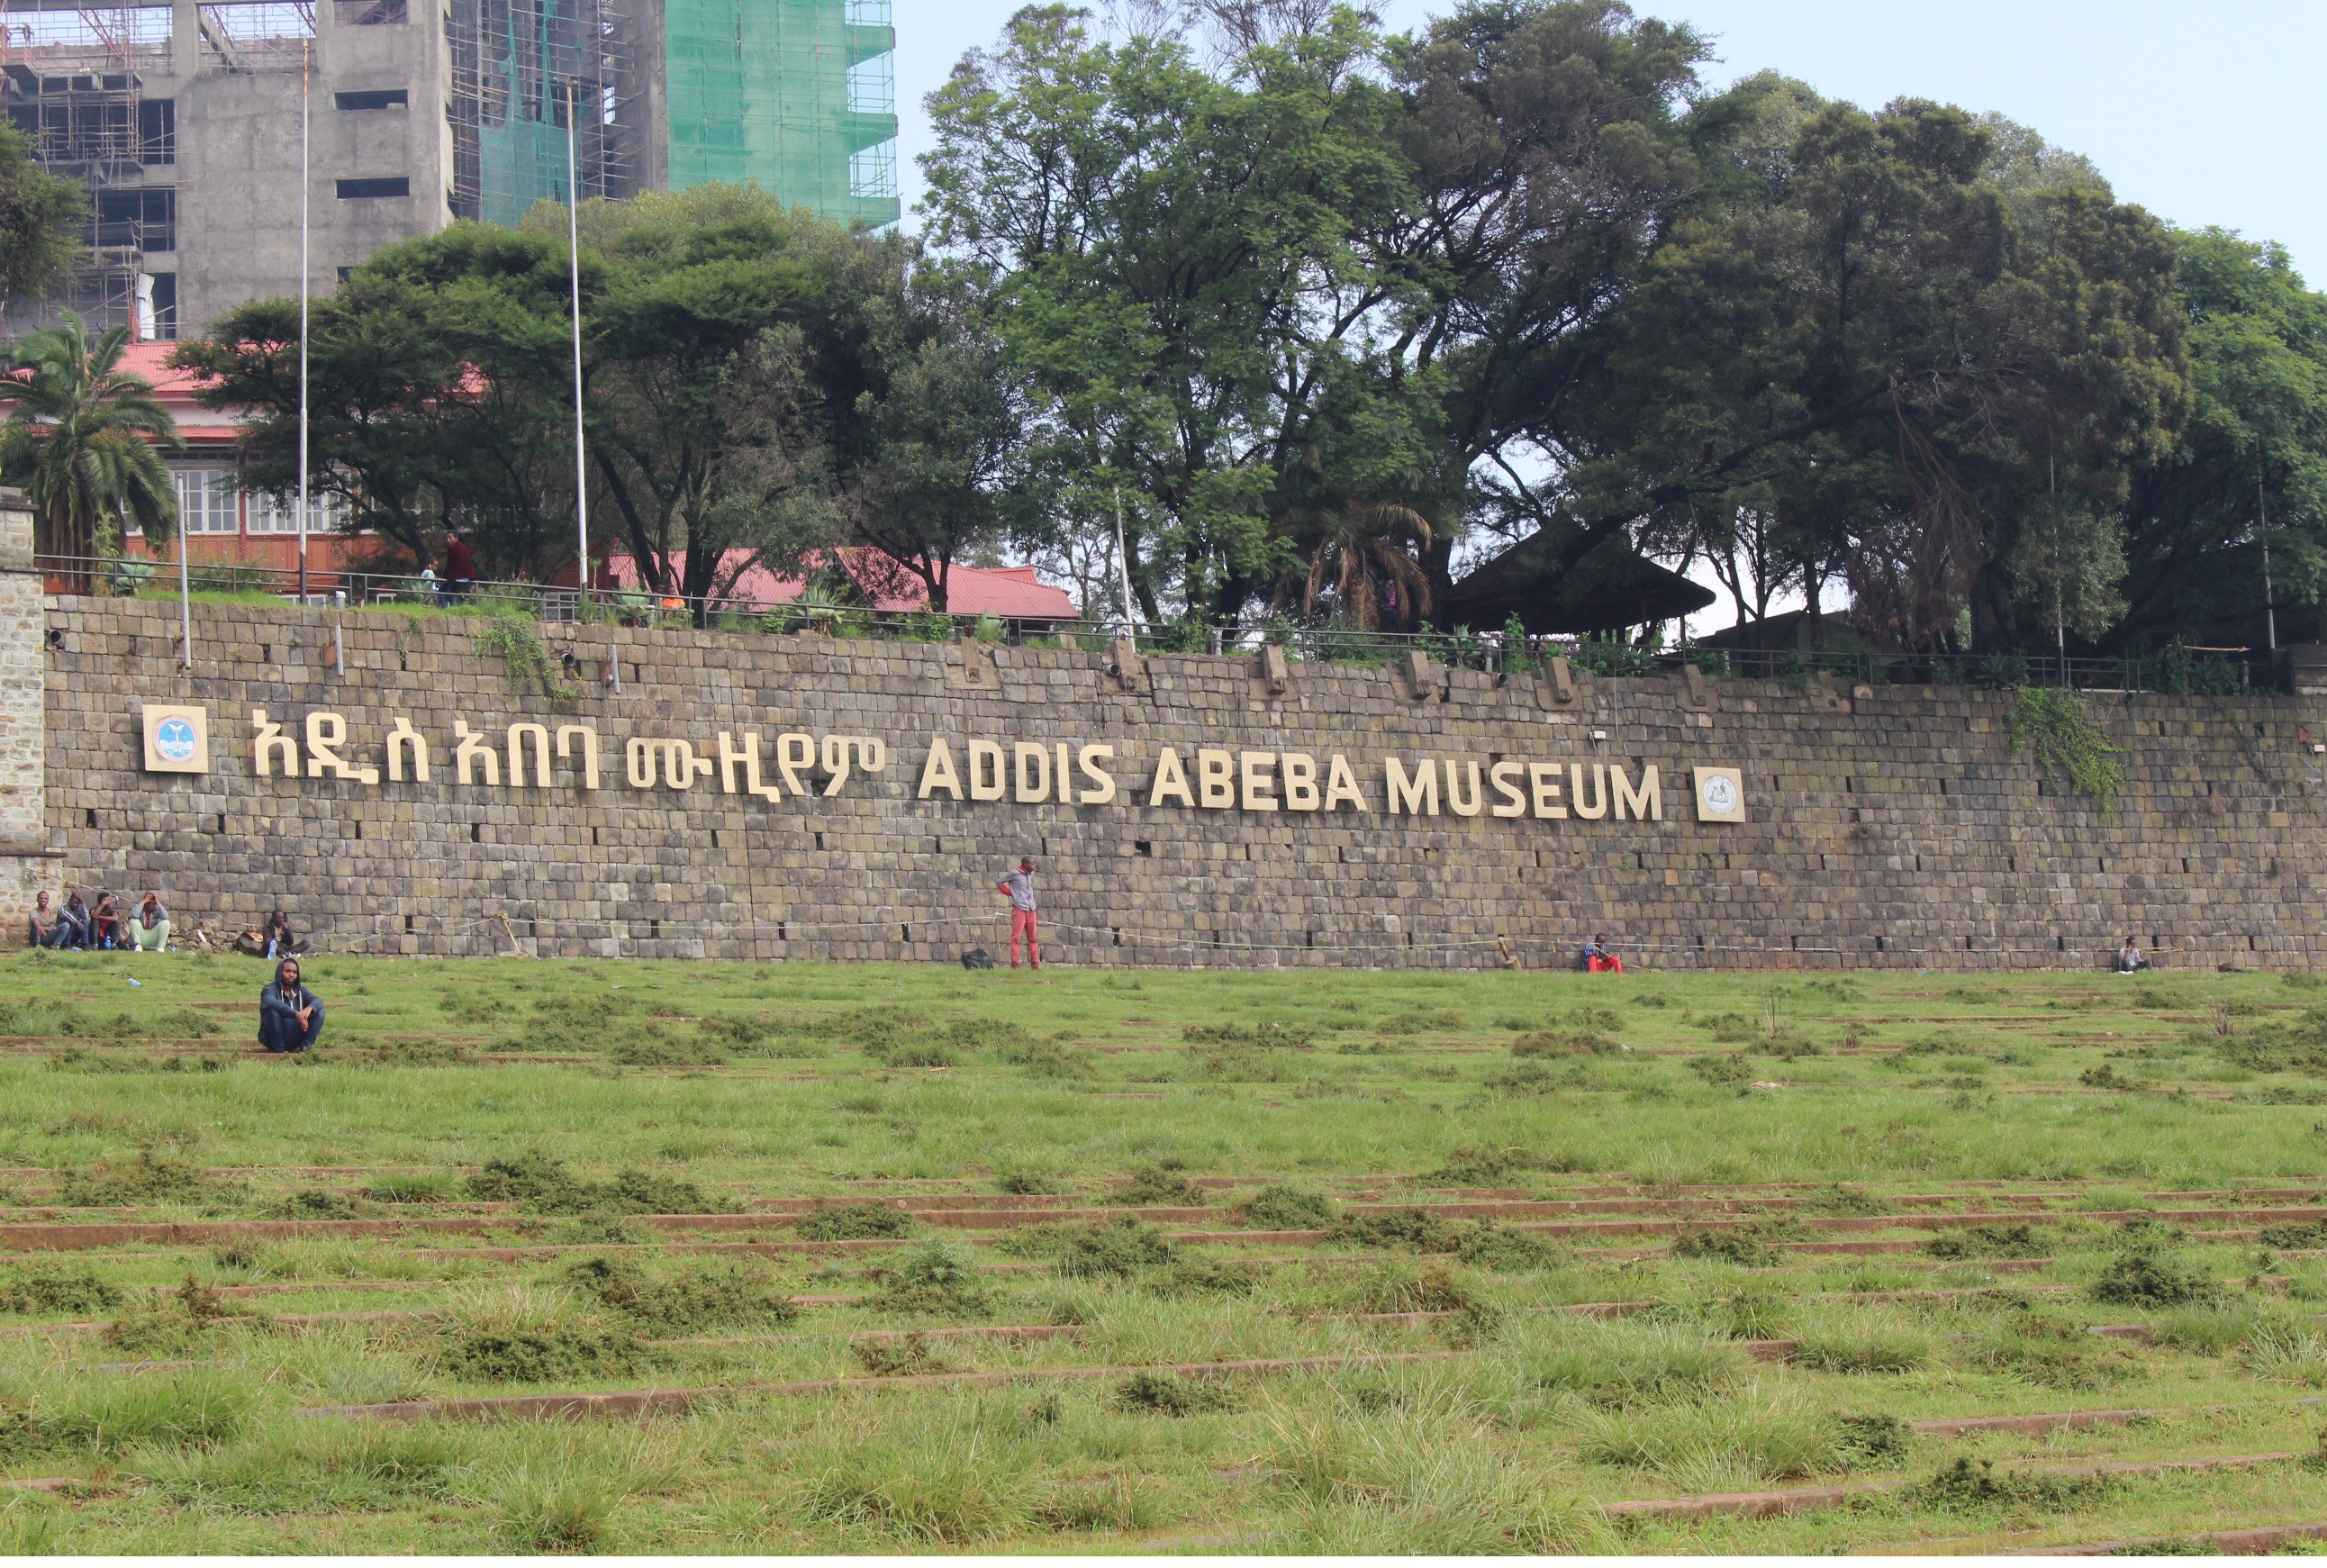 10 Top Guided Tours To Take In Addis Ababa